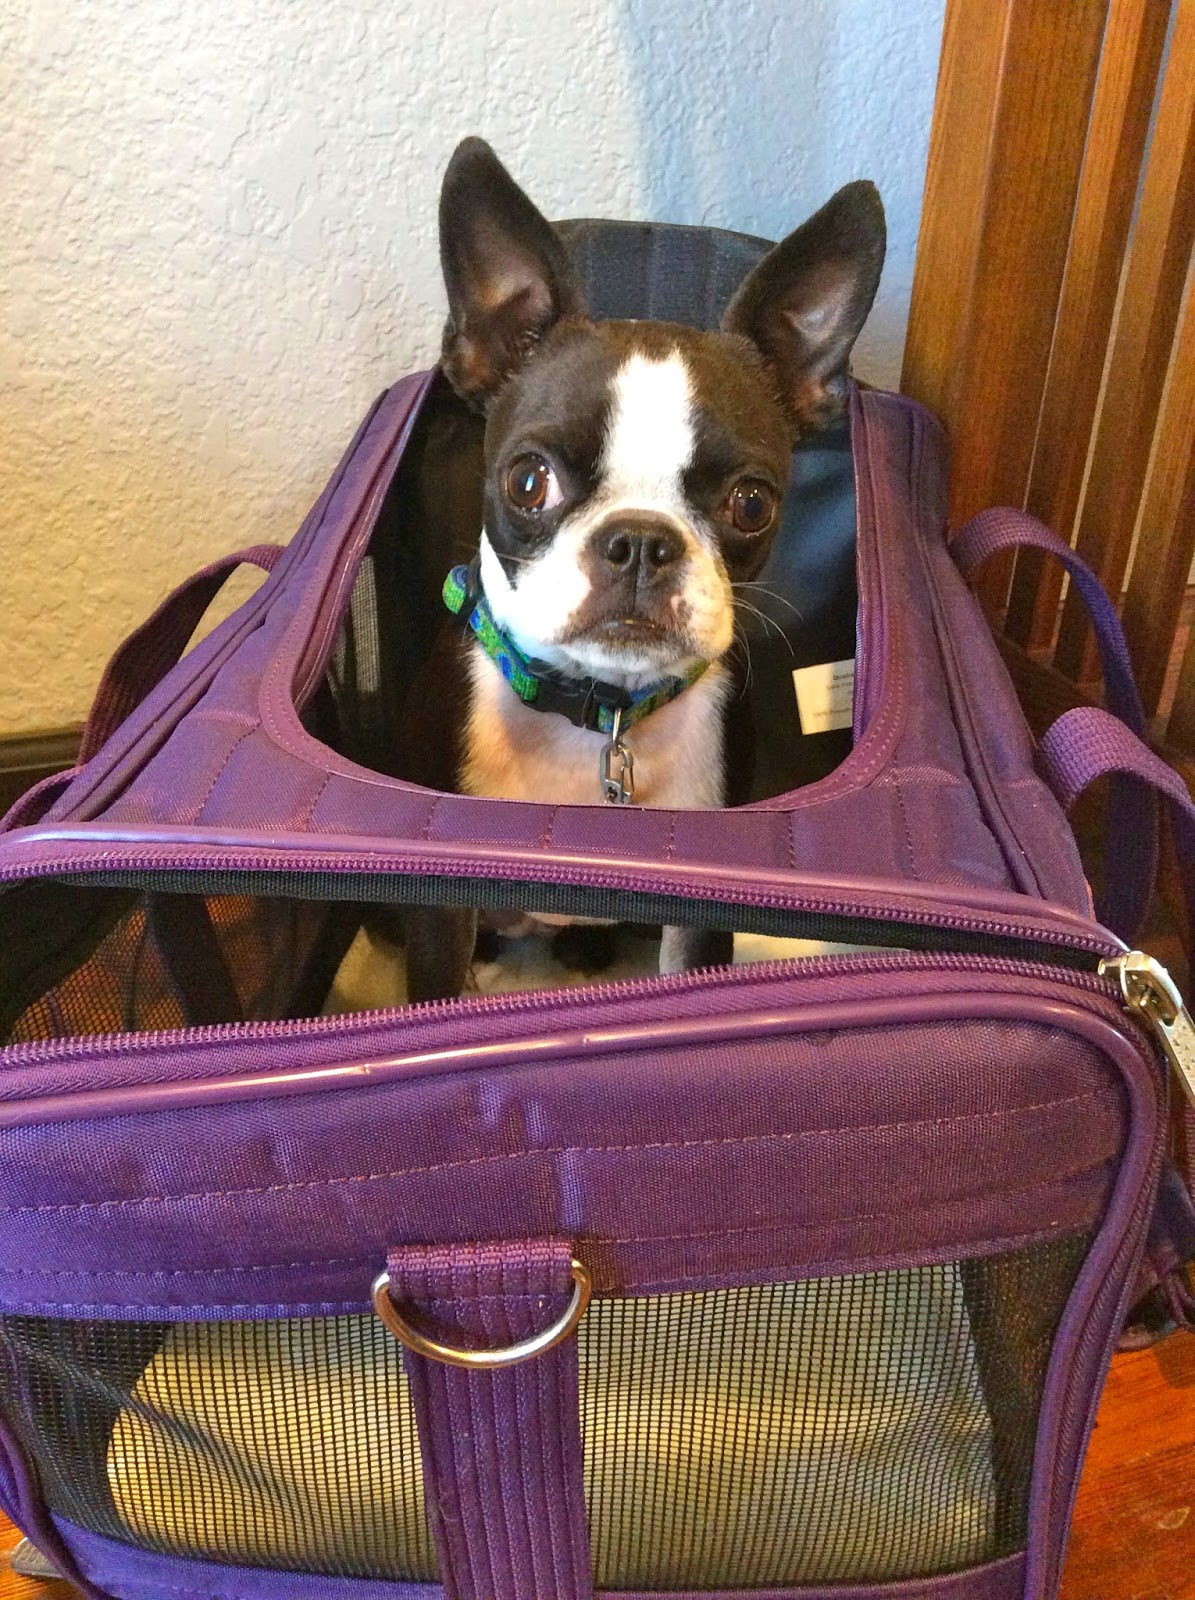 Sinead the Boston terrier in her airplane carrier